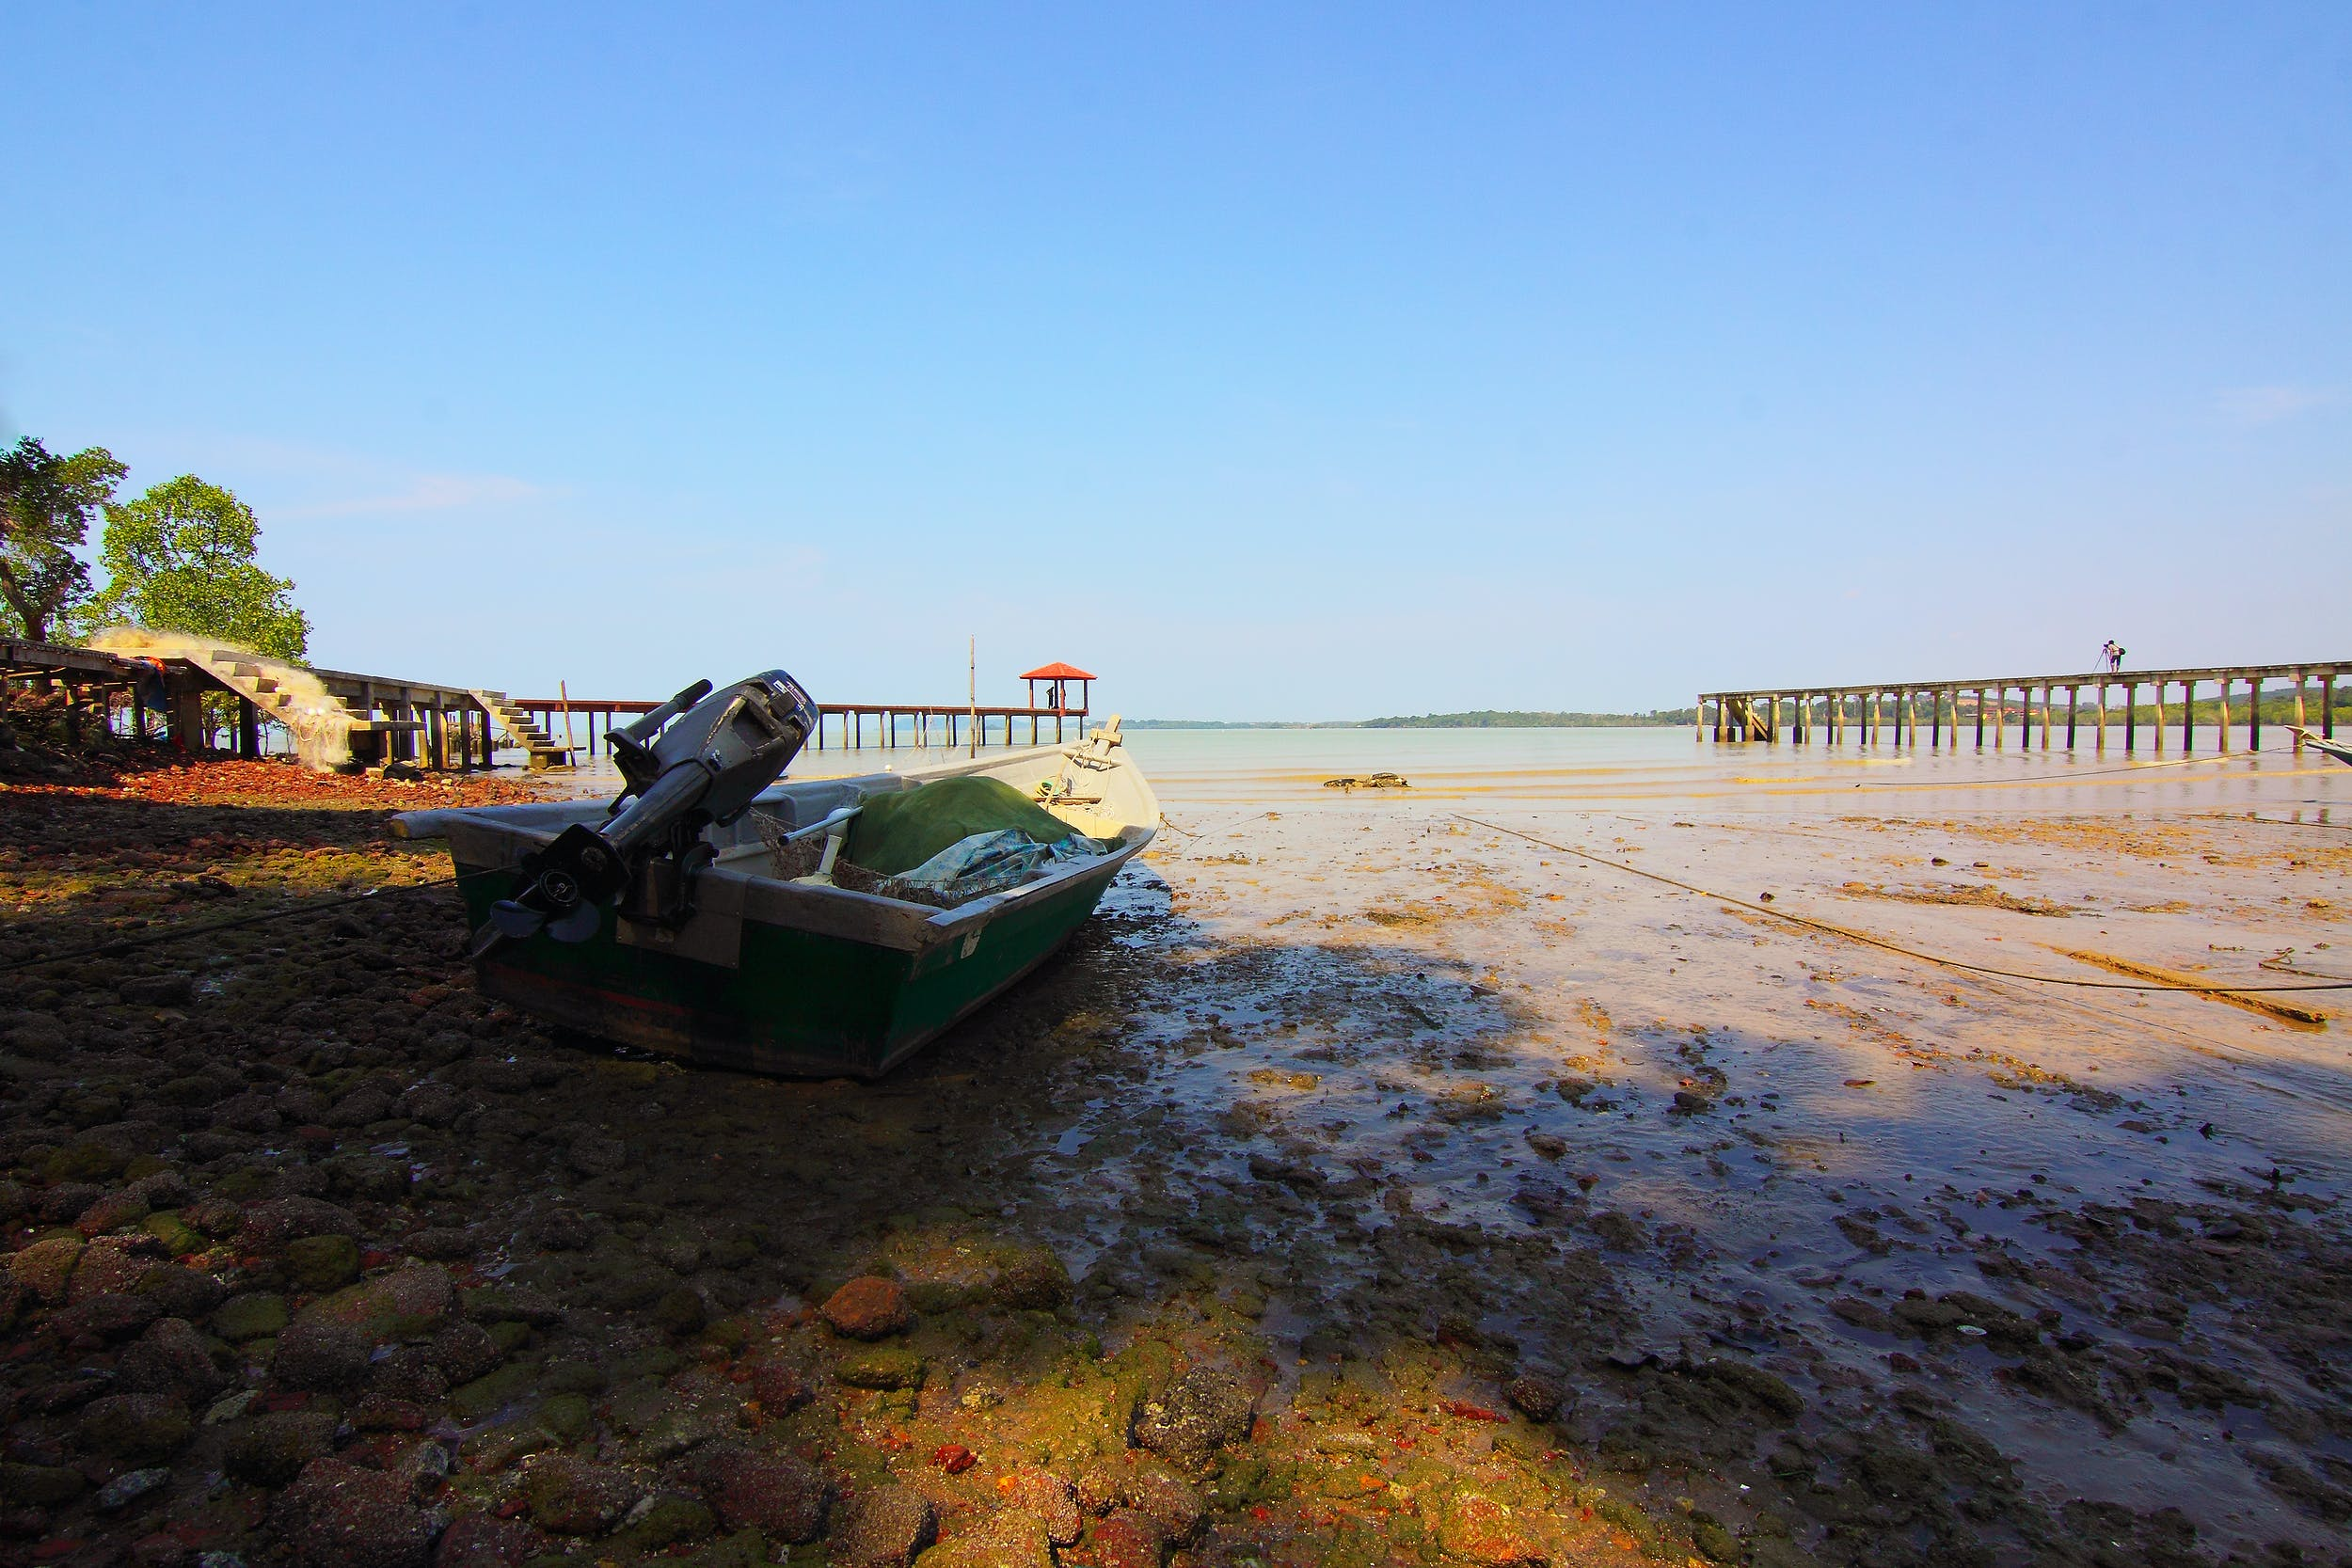 Boat With Outboard Motor on Seashore during Low Tide